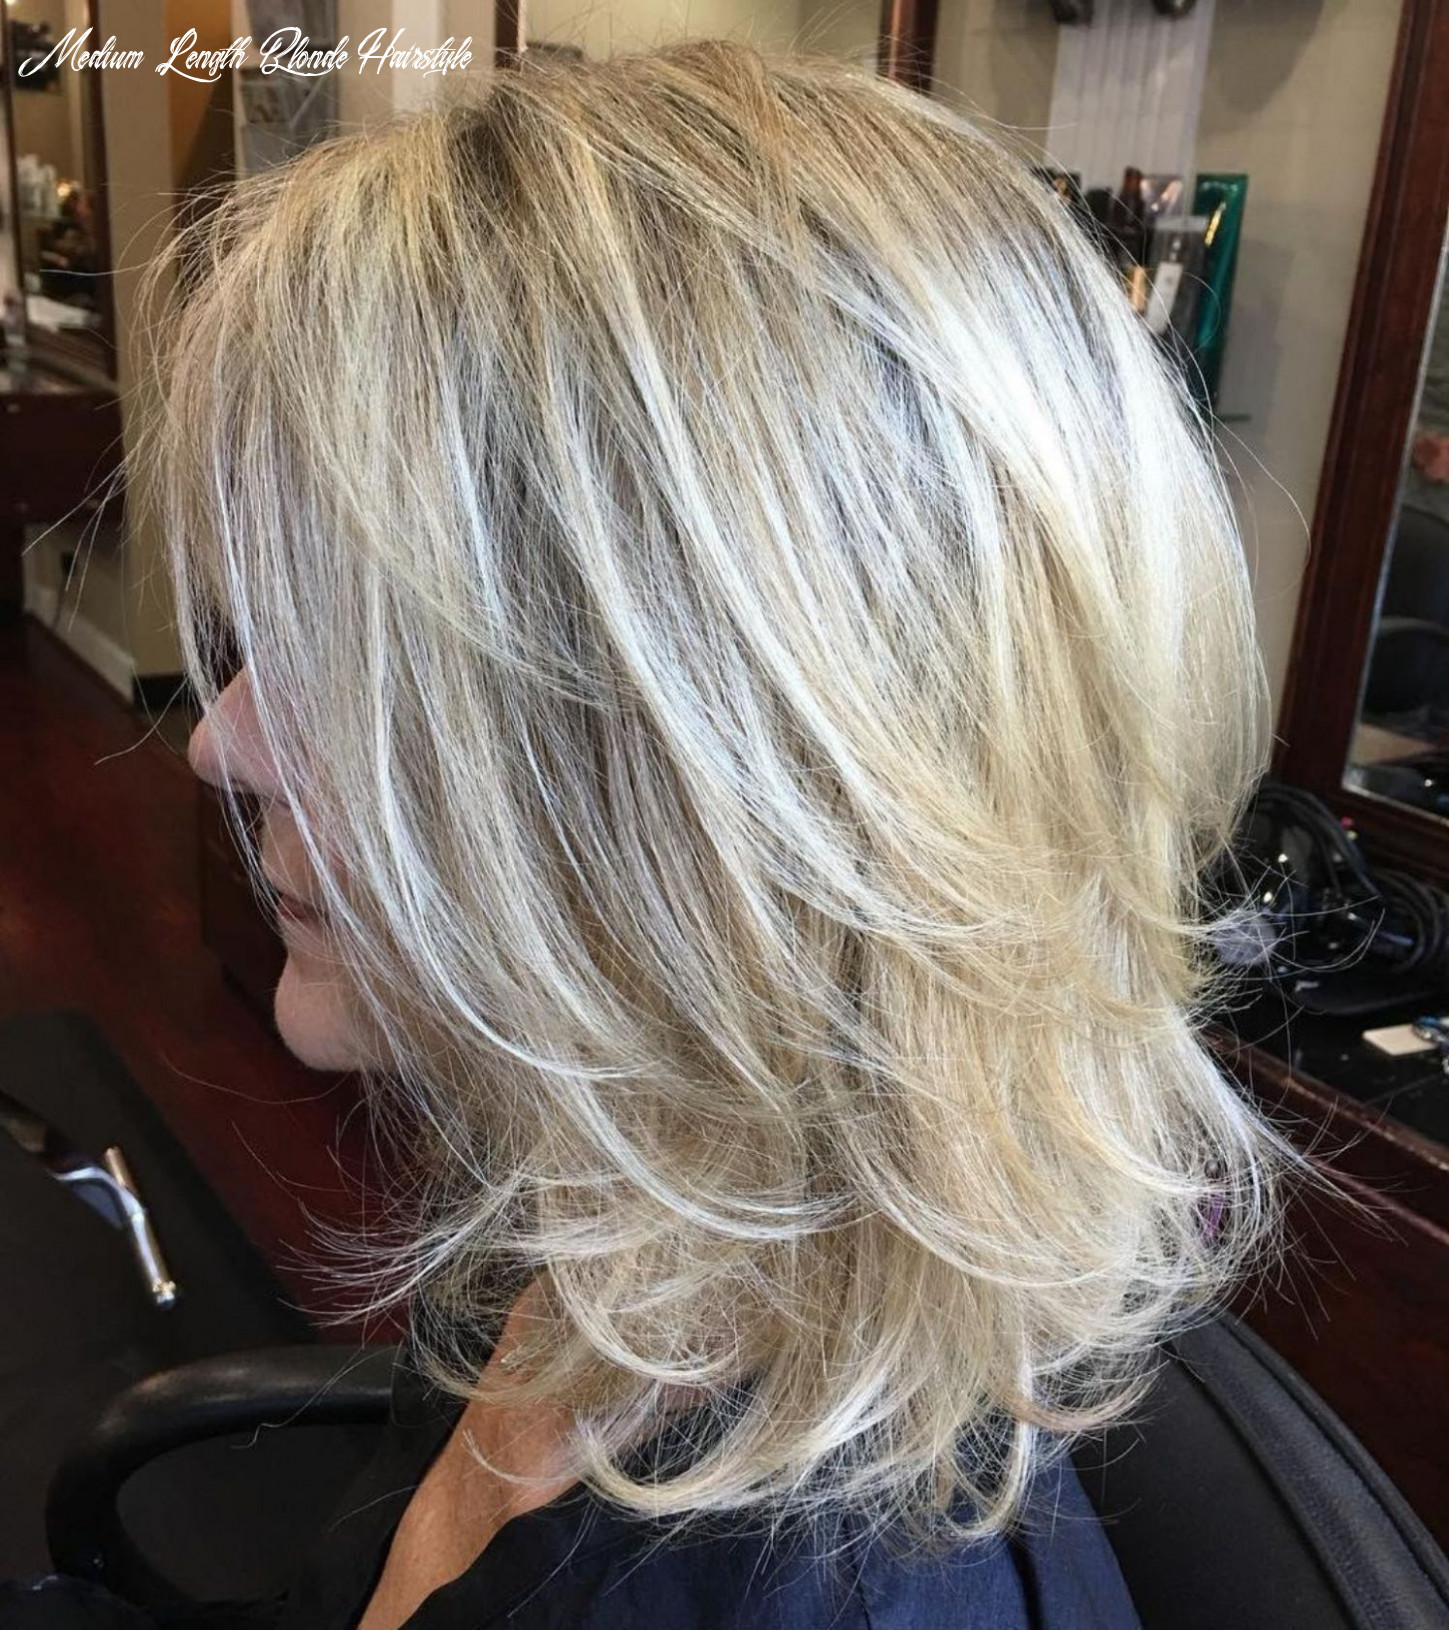 Pin on hairstyles , nails @ eyes @lips medium length blonde hairstyle